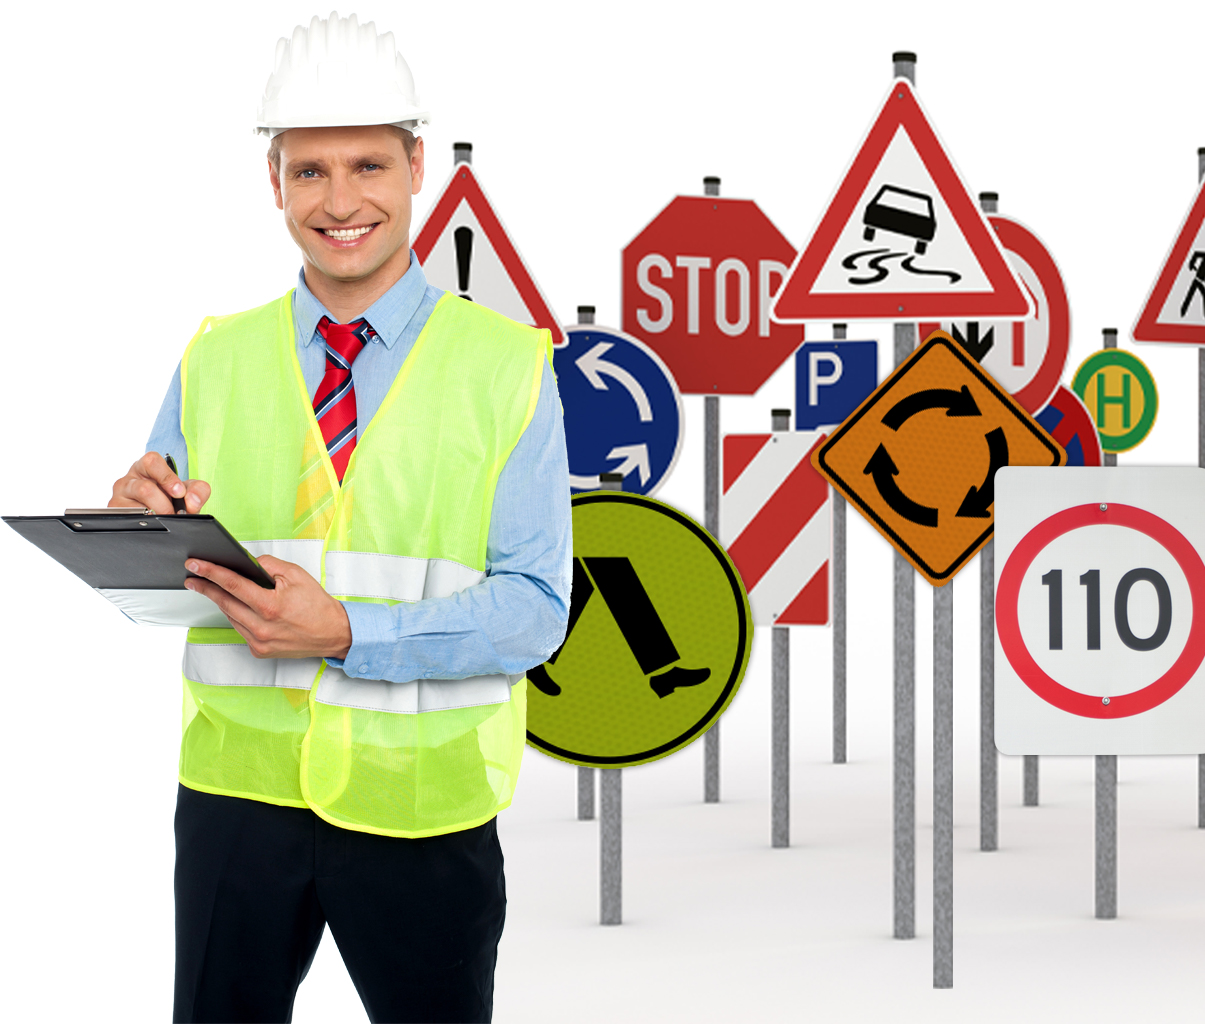 safety product signs 1205x1024 option 2